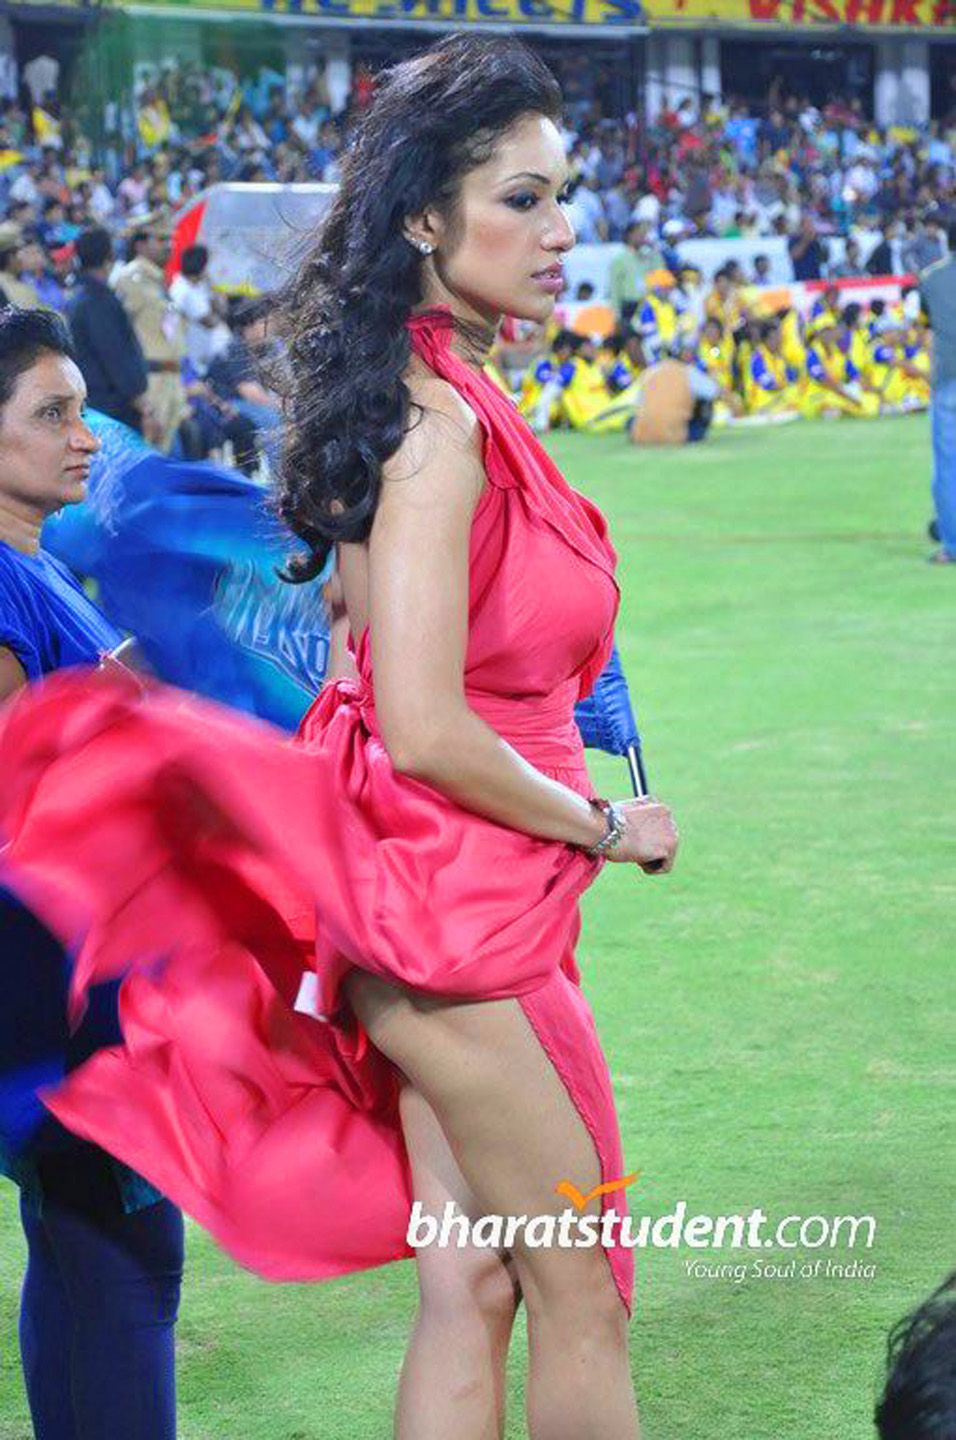 mumbai indian's supporter - upskirt, butt show. | indian actress